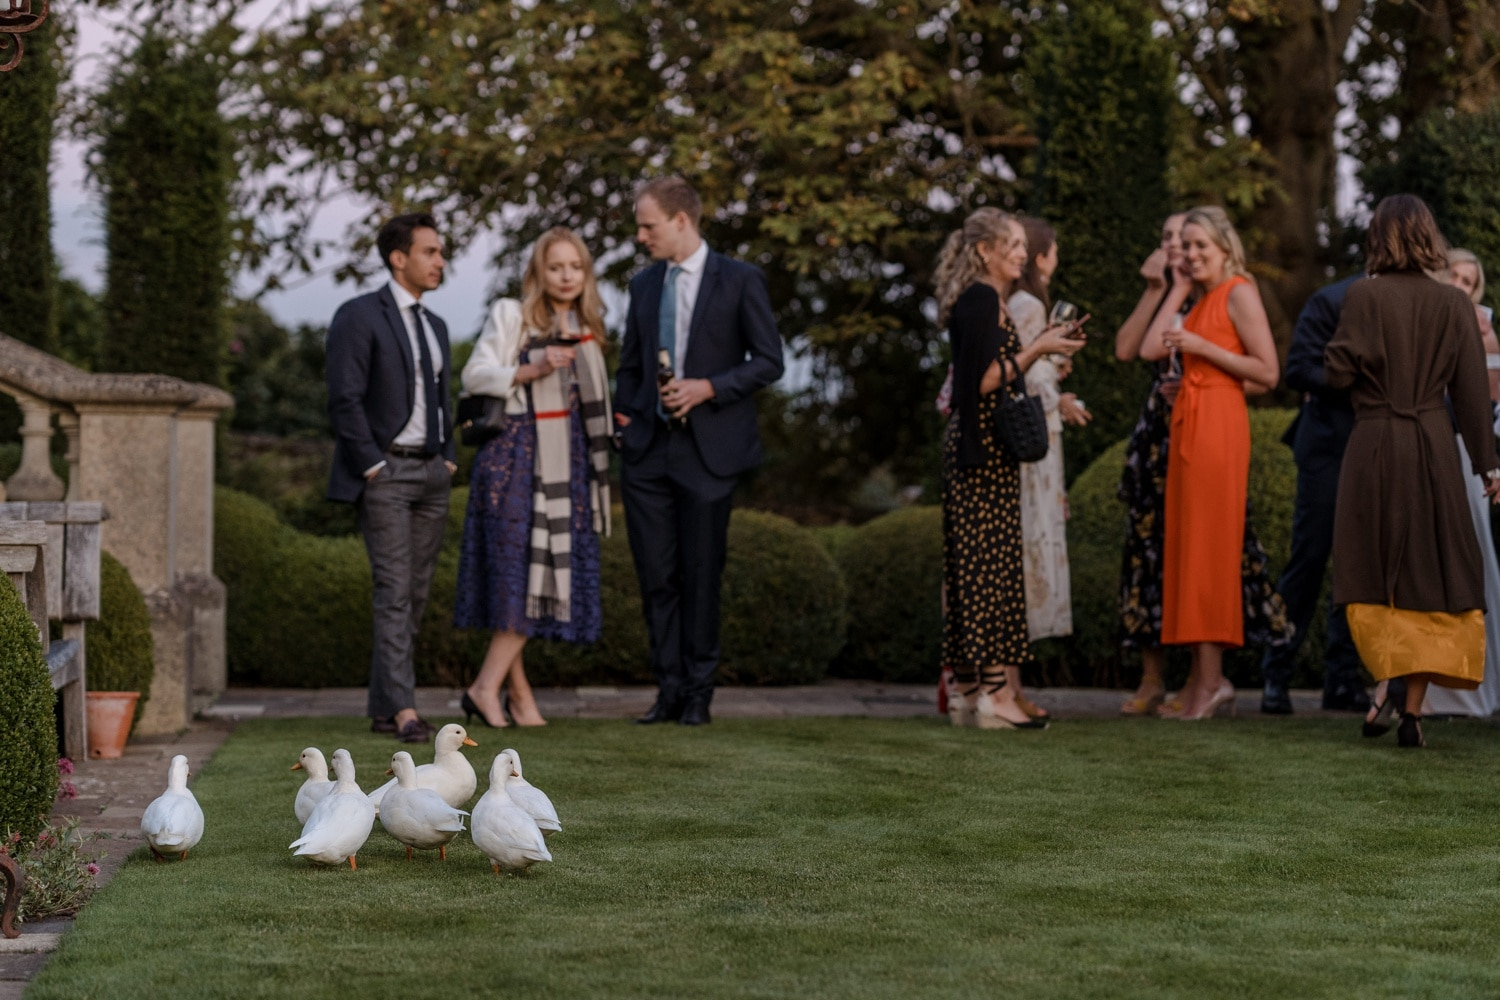 Ducks with wedding guests